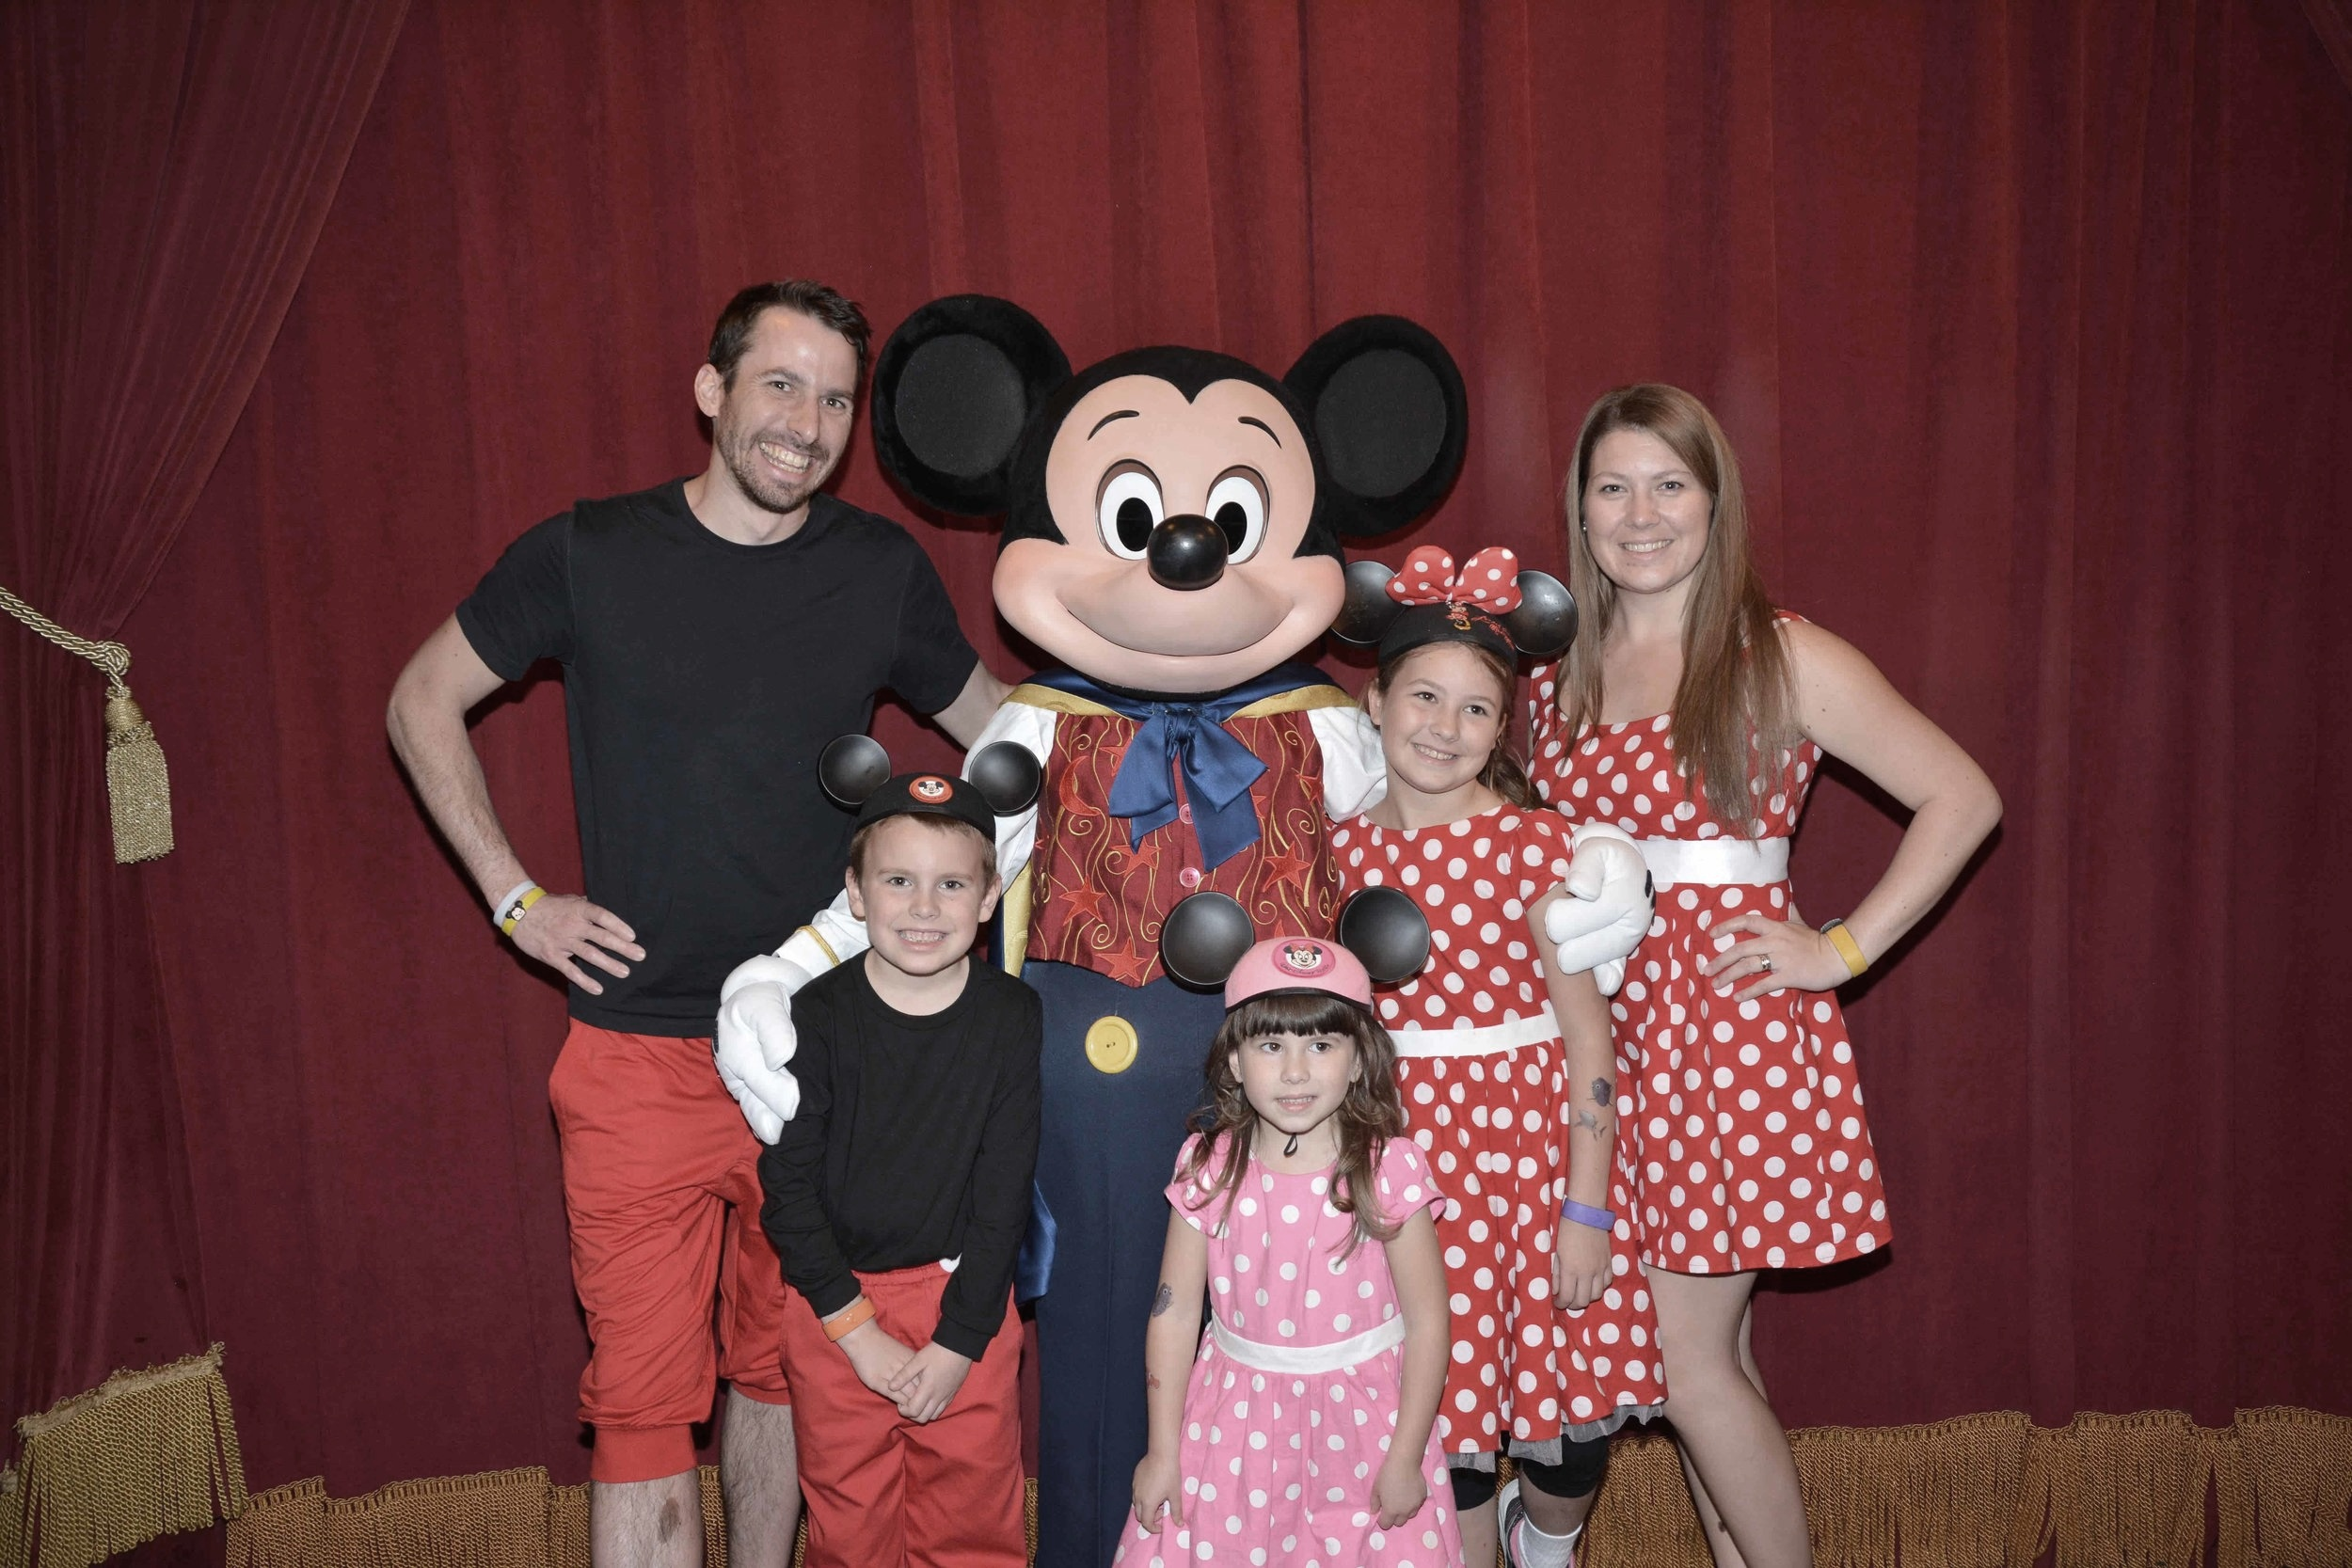 - When I'm not working on all this, I am with my wife and 3 kids (occasionally we visit Uncle Mickey) seeking everyday adventures and learning to live our own great story.